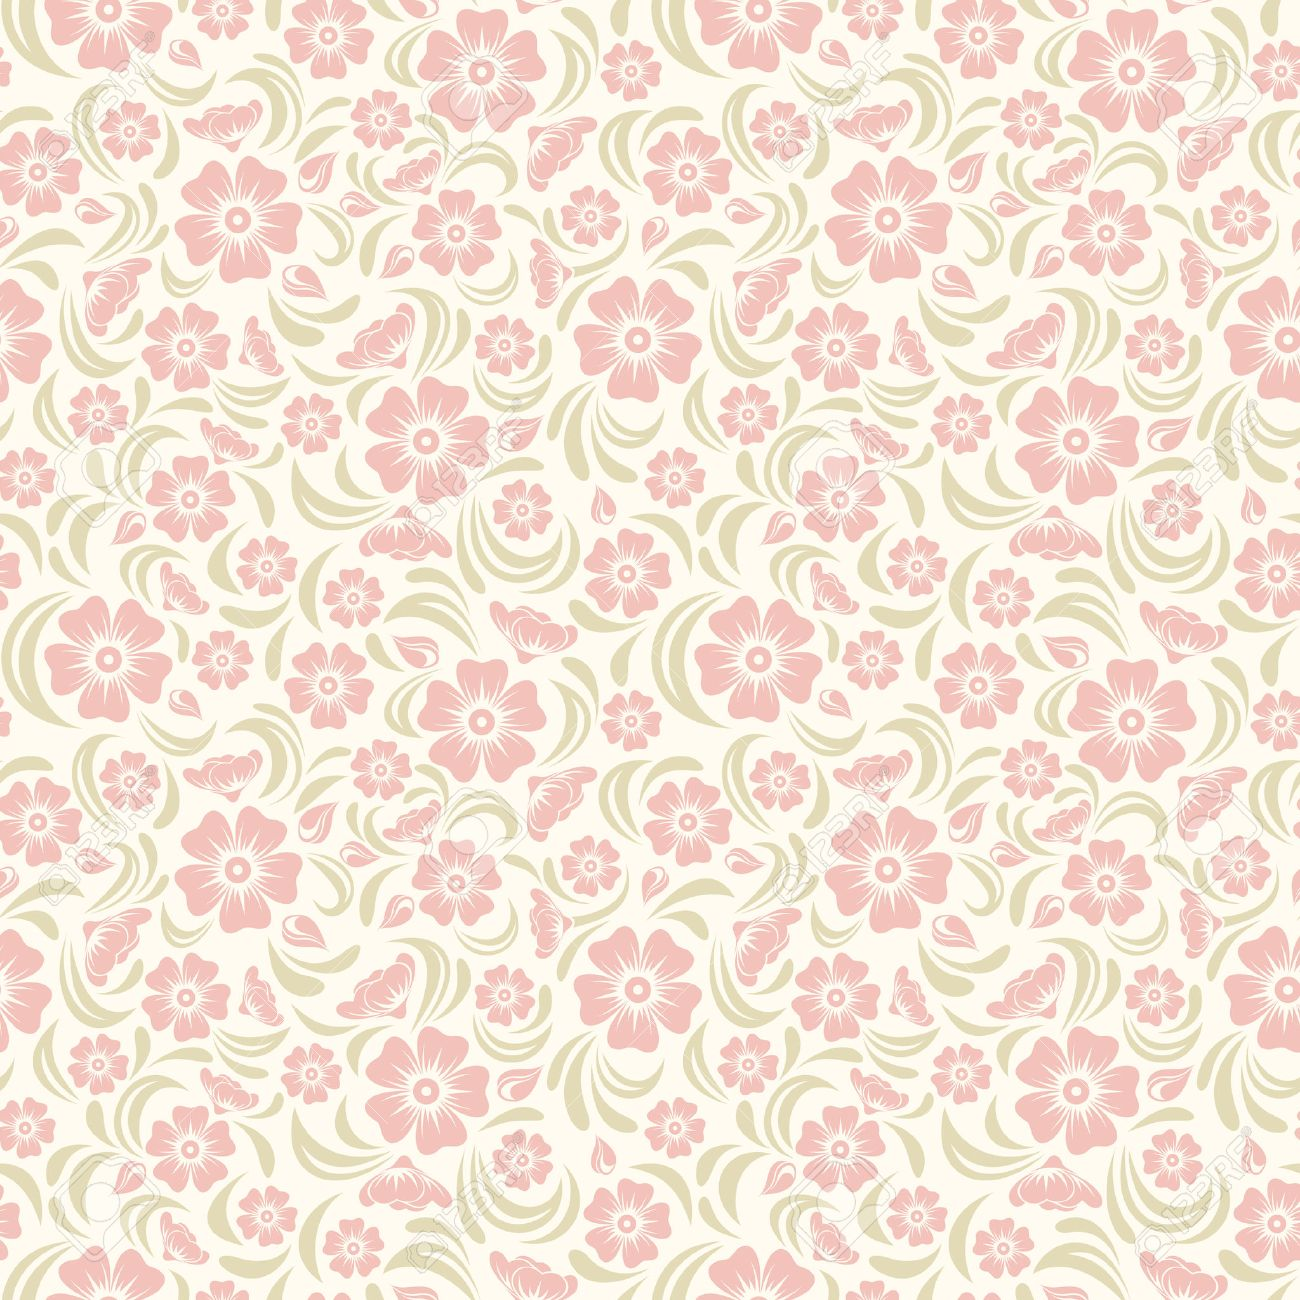 Seamless Vintage Floral Pattern Vector Illustration Royalty Free